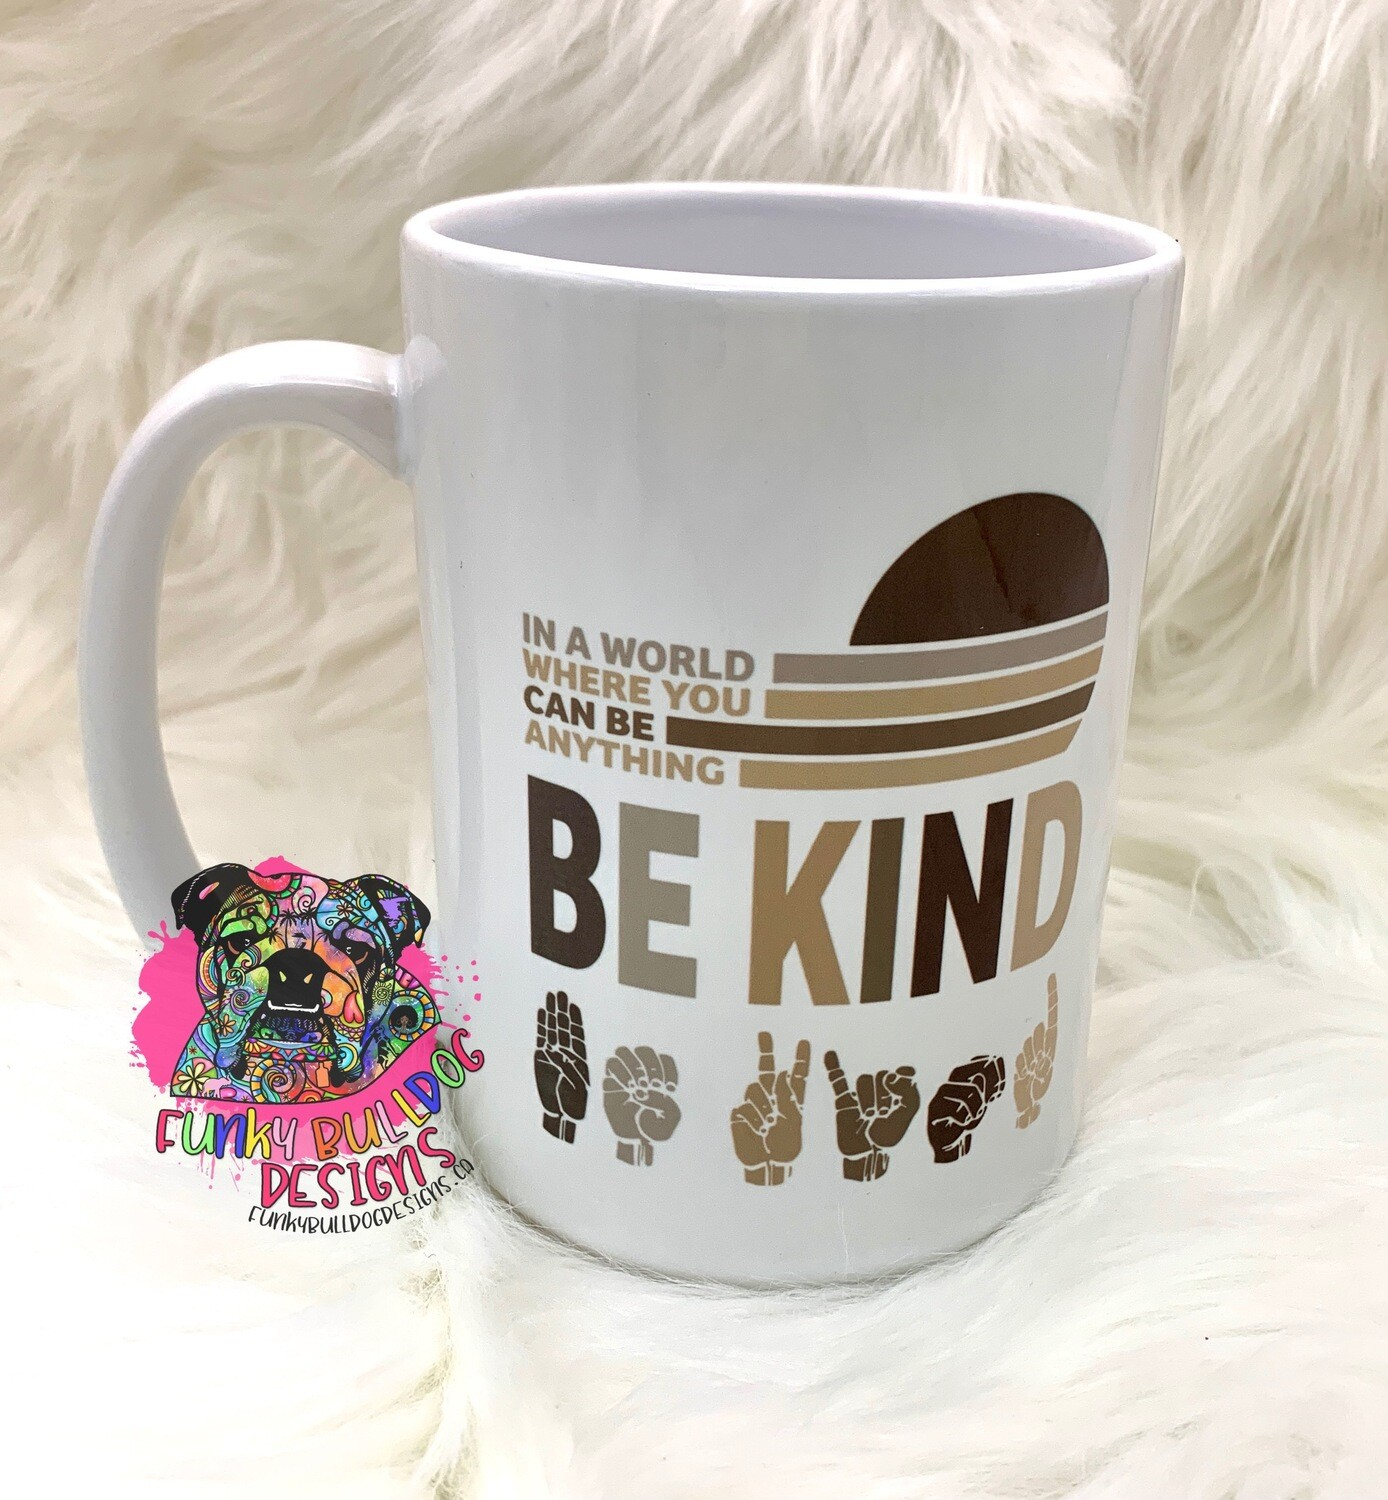 15oz Ceramic Mug - In a world where you can be anything, Be Kind